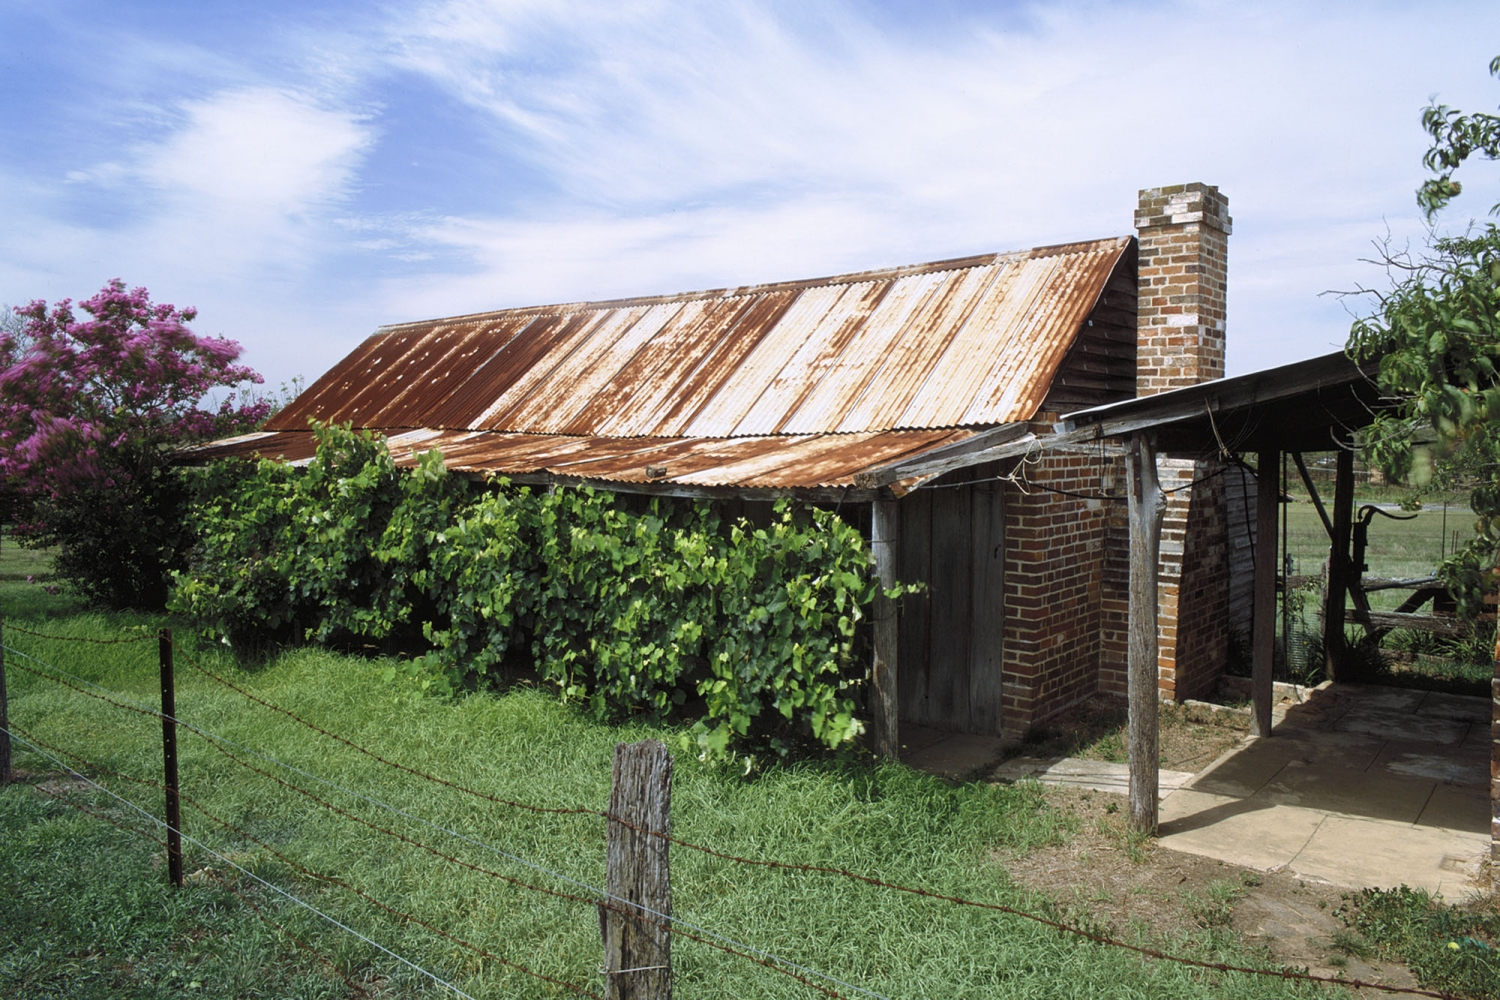 Rusty roofed farm building with green vine growing on front verandah posts.